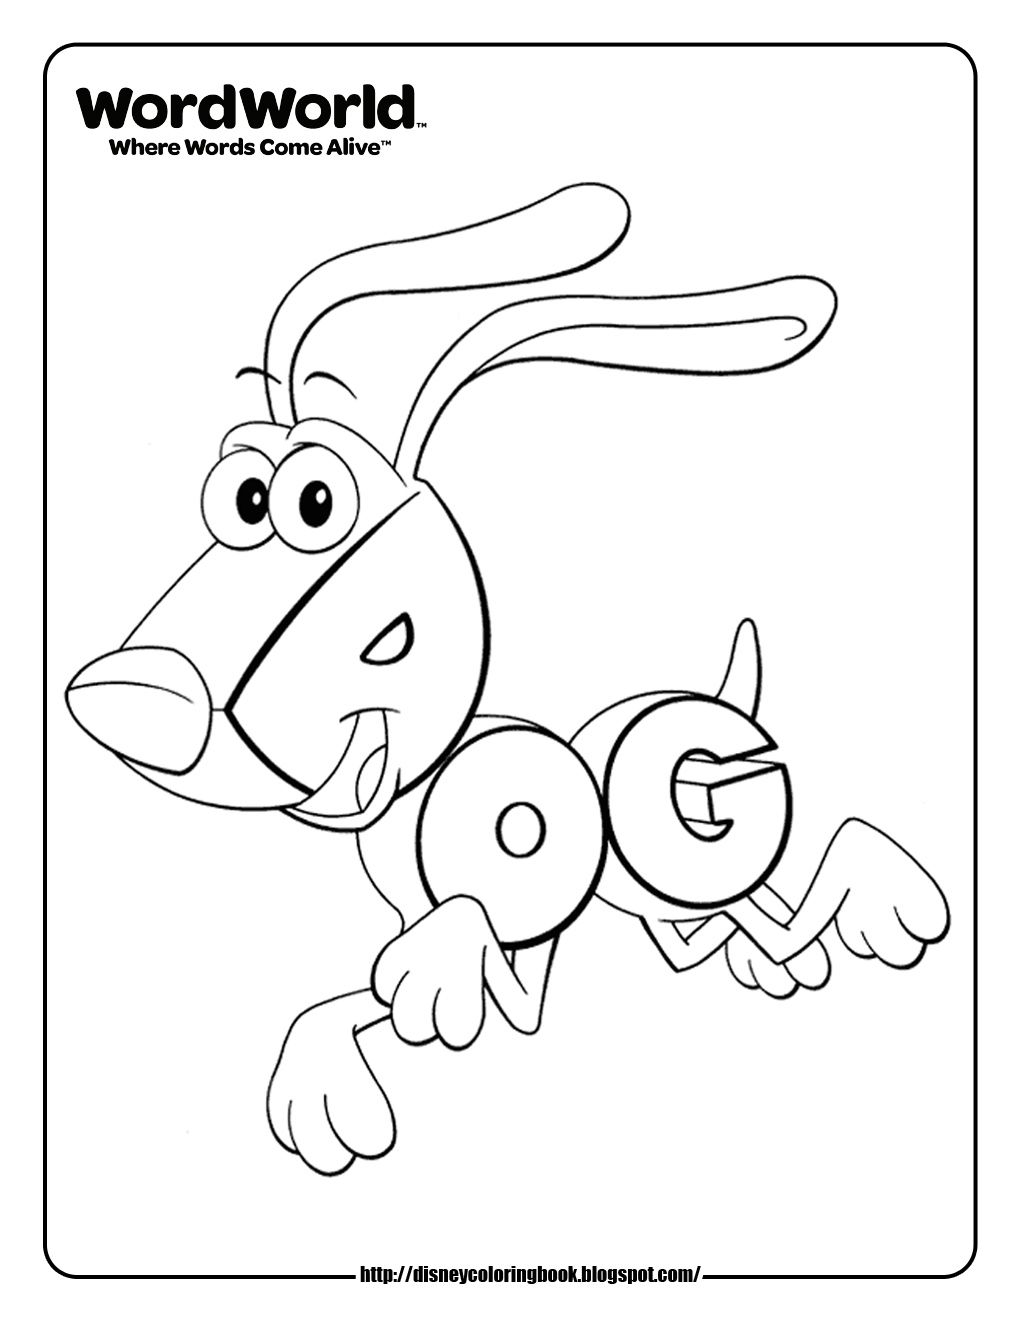 Printable coloring pages with words - Word World Dog Coloring Pages I Know A Three Year Old Who Will Love This